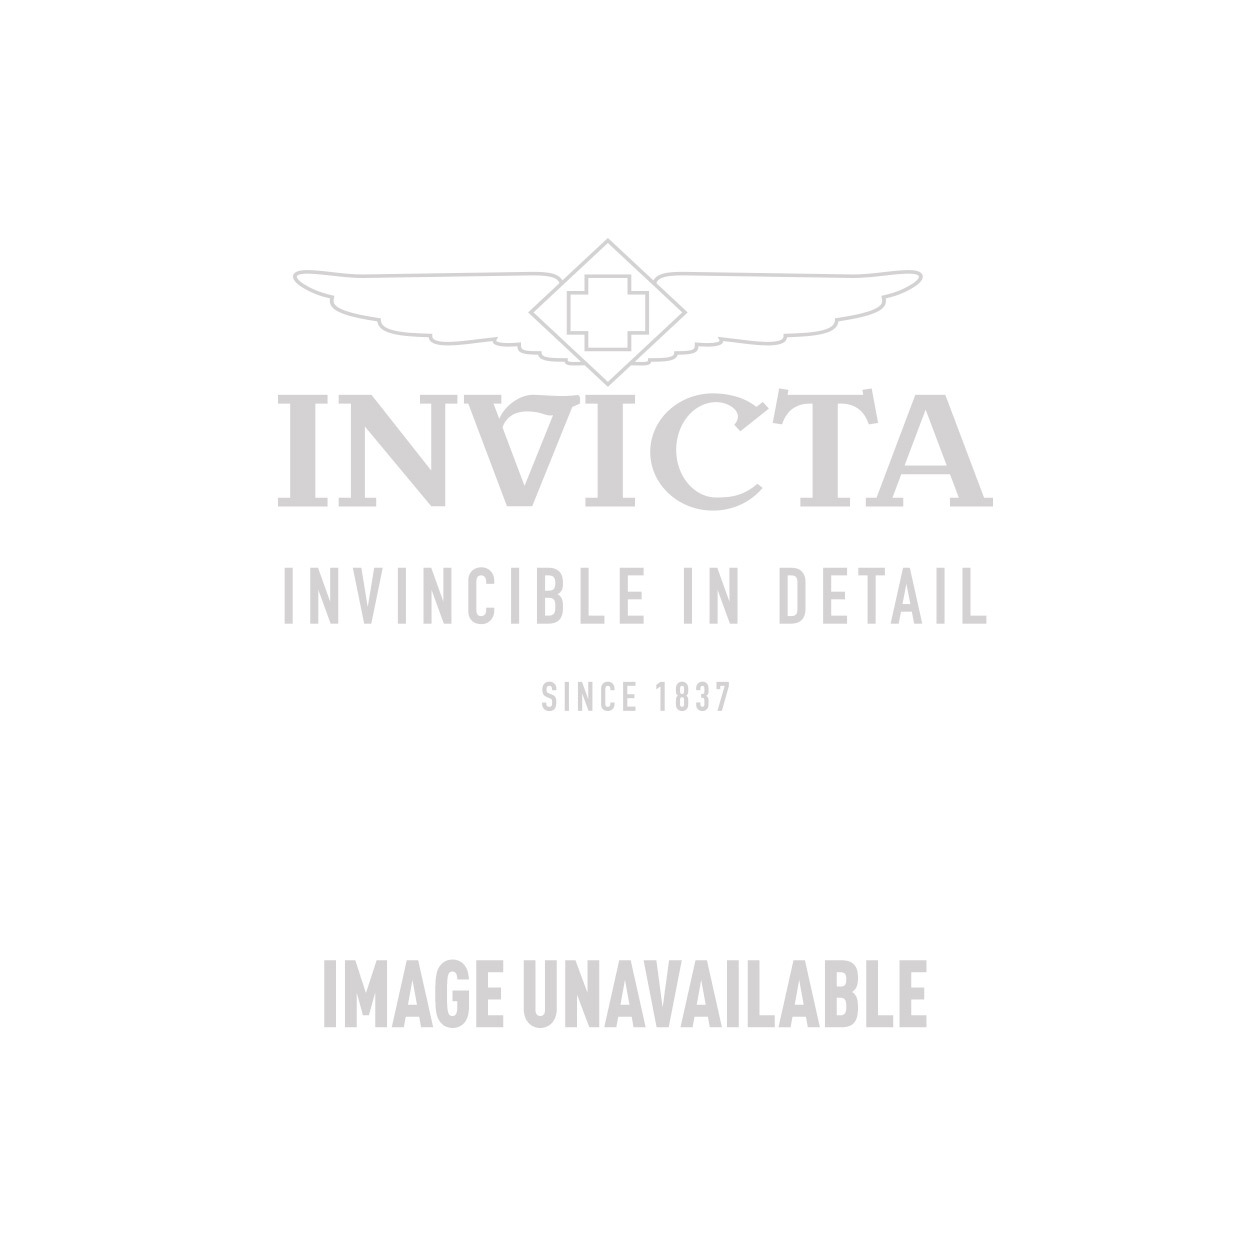 Invicta I-Force Quartz Watch - Stainless Steel case with Black tone Leather band - Model 12972